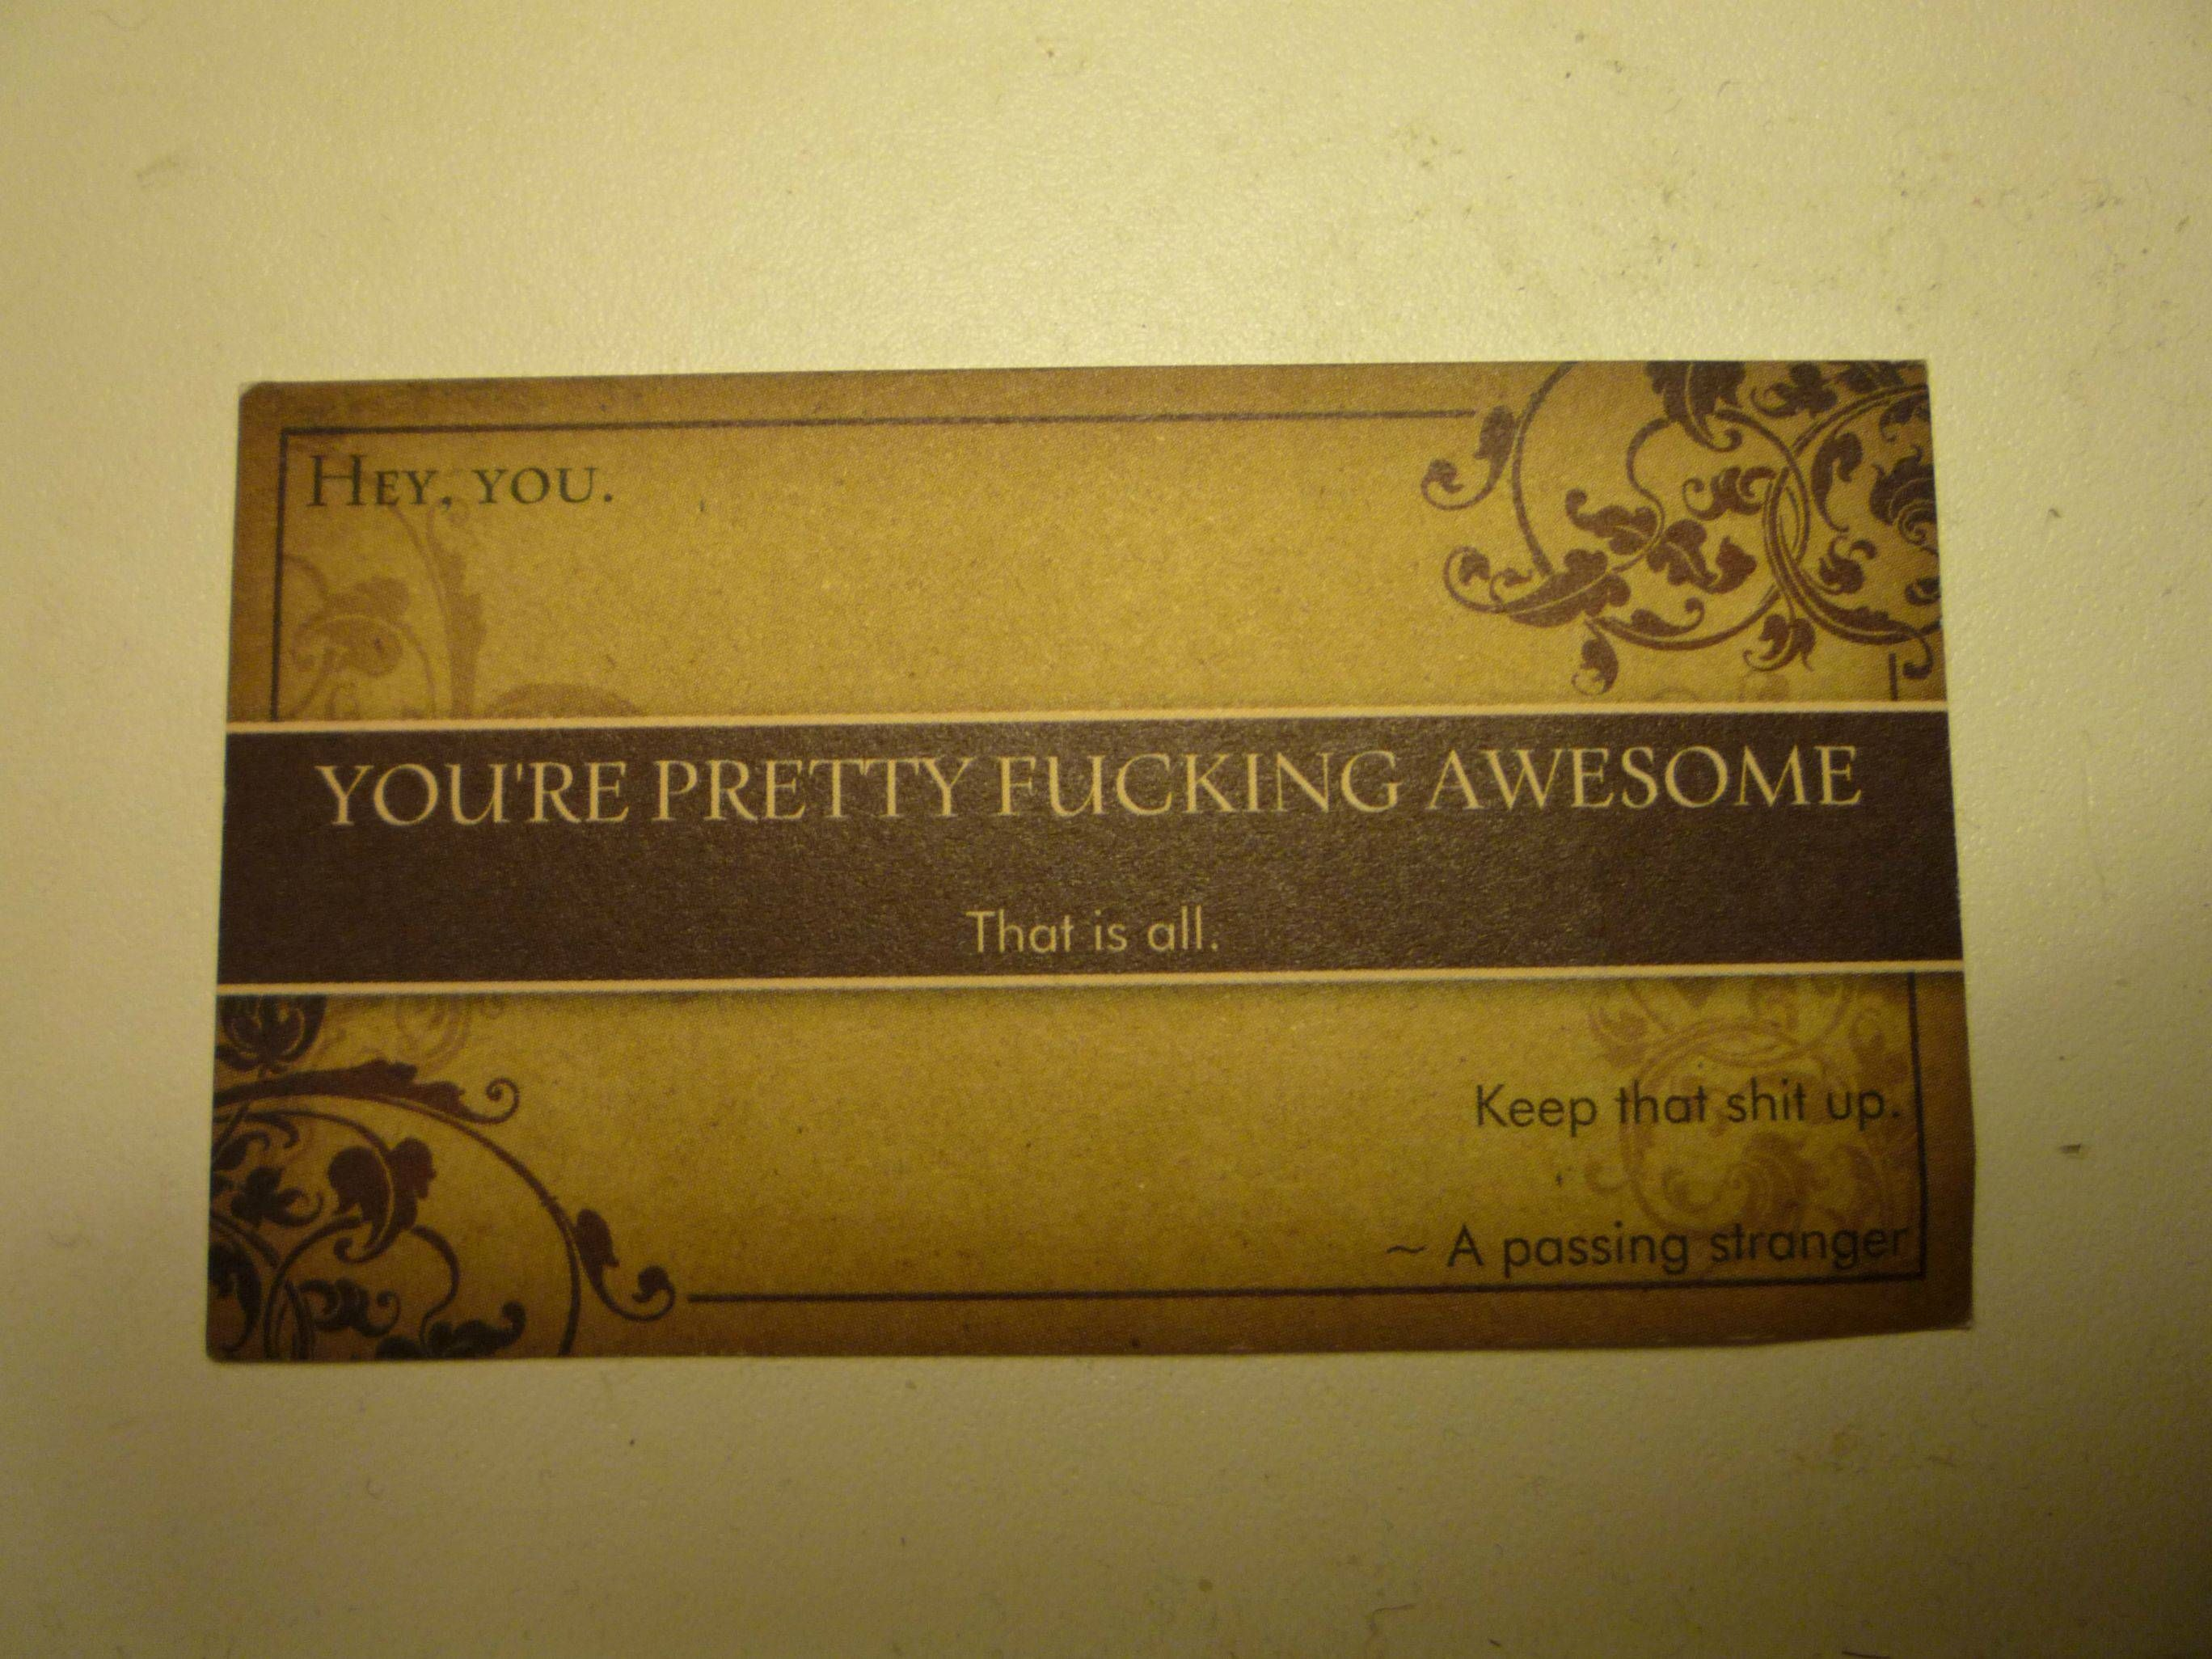 You are pretty f*cking awesome. Business card left behind with a ...